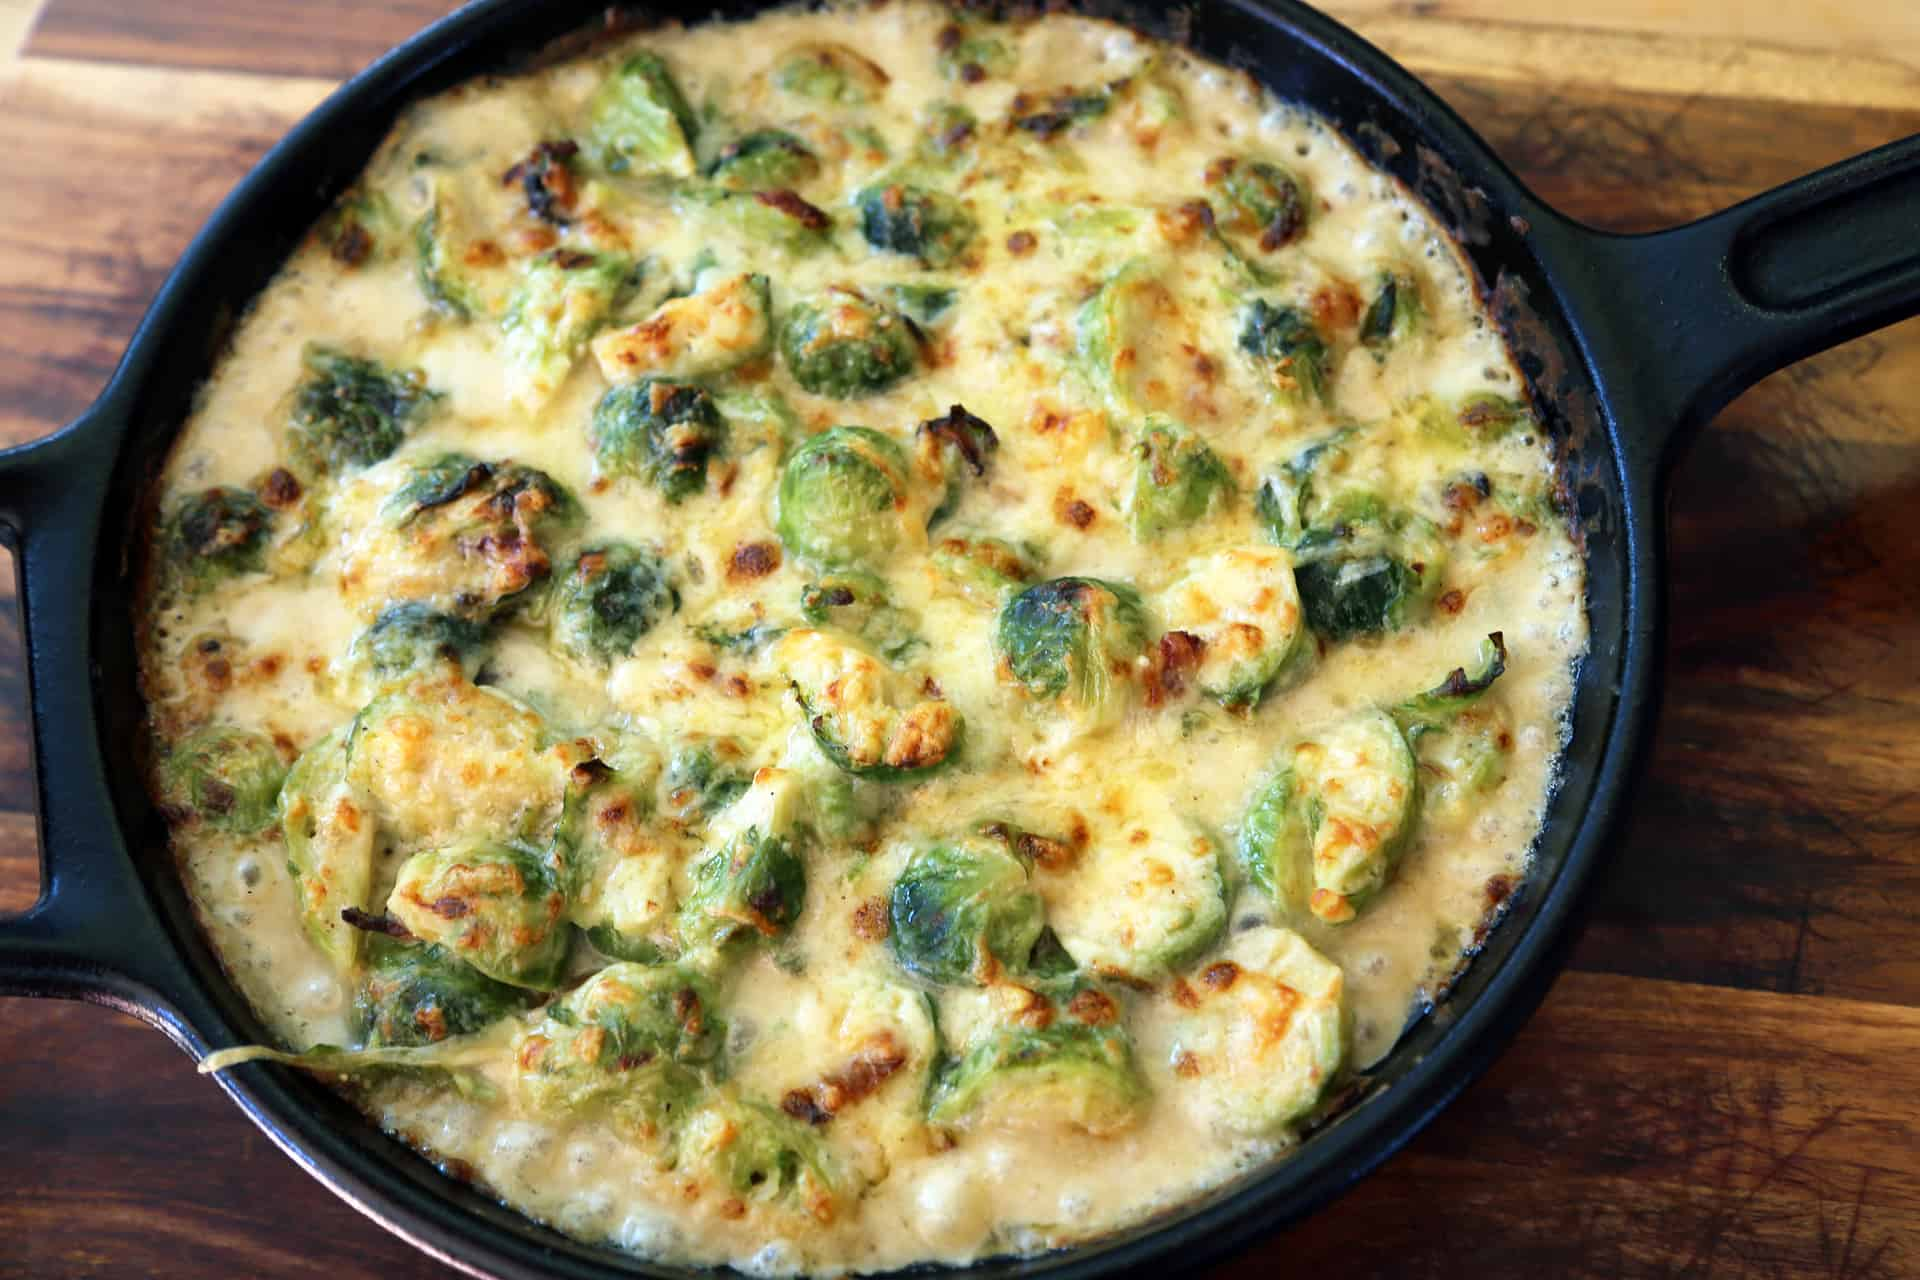 Creamy dijon brussel sprouts